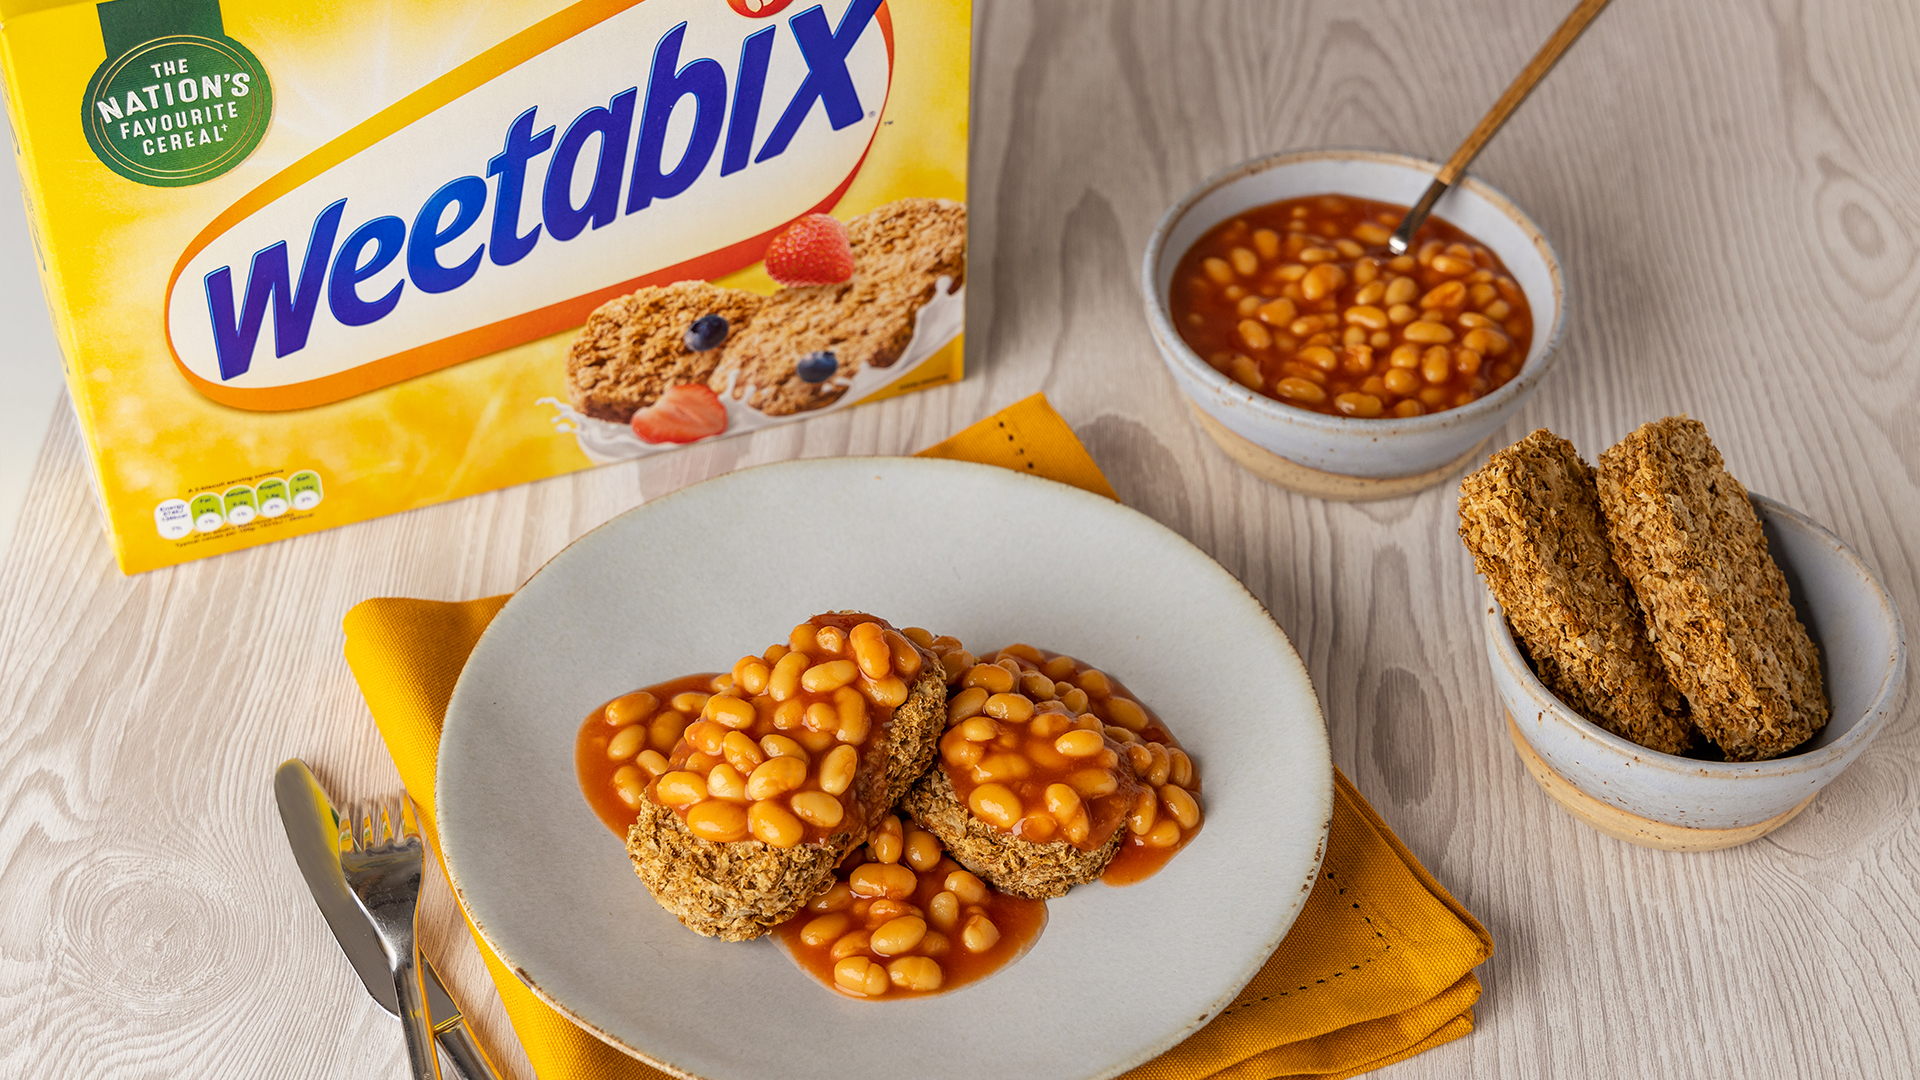 Weetabix trends on social media with unusual post